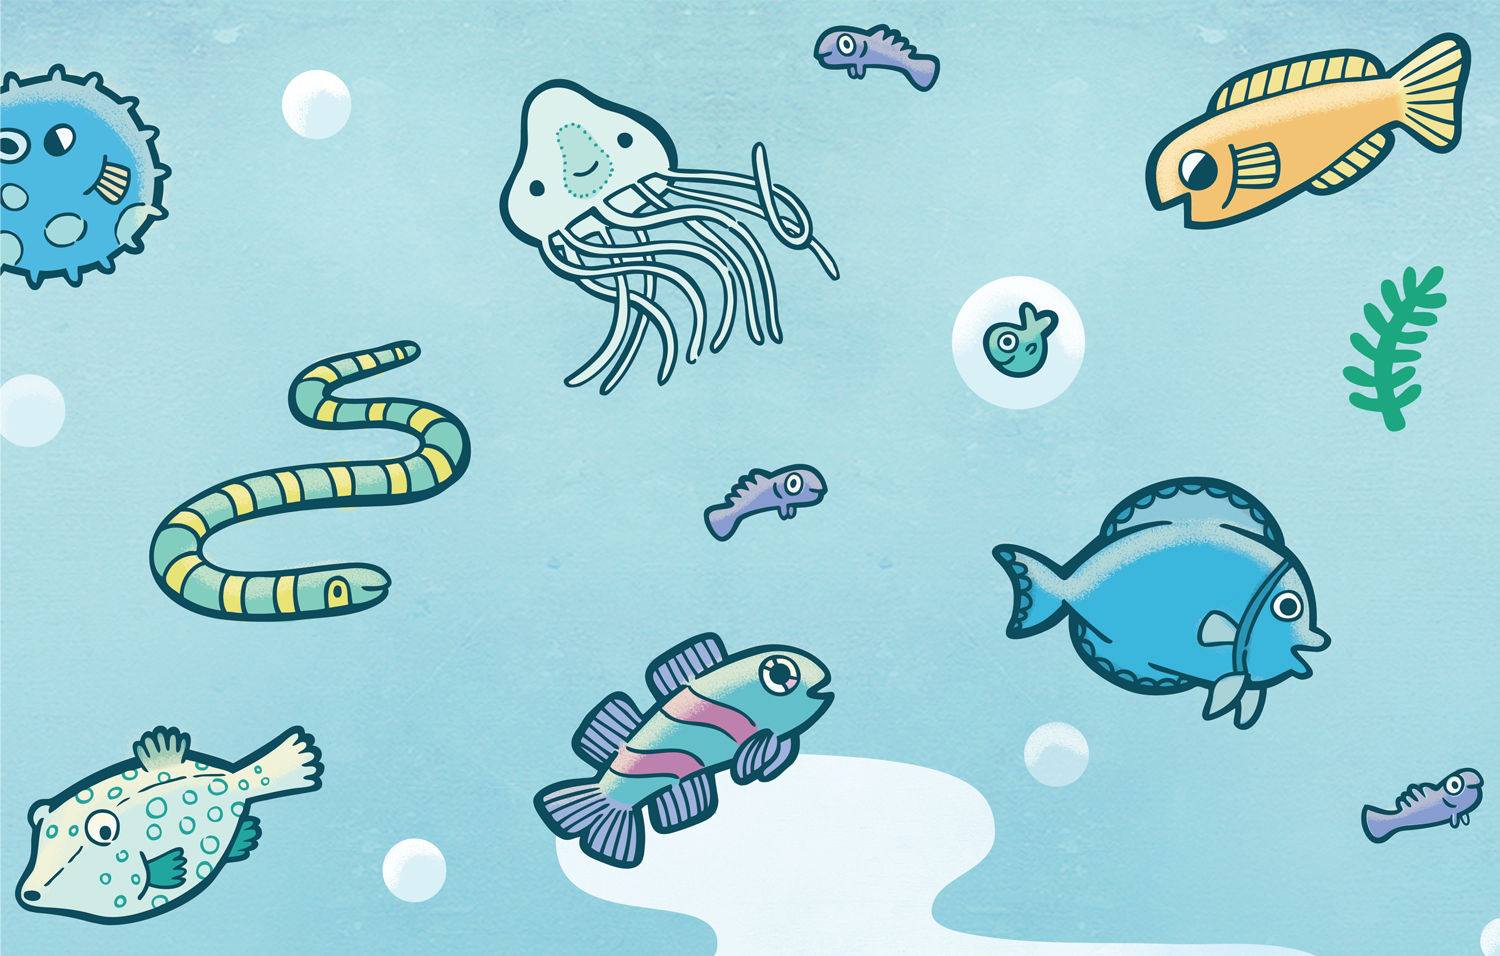 Detail from the Under the Sea board game.